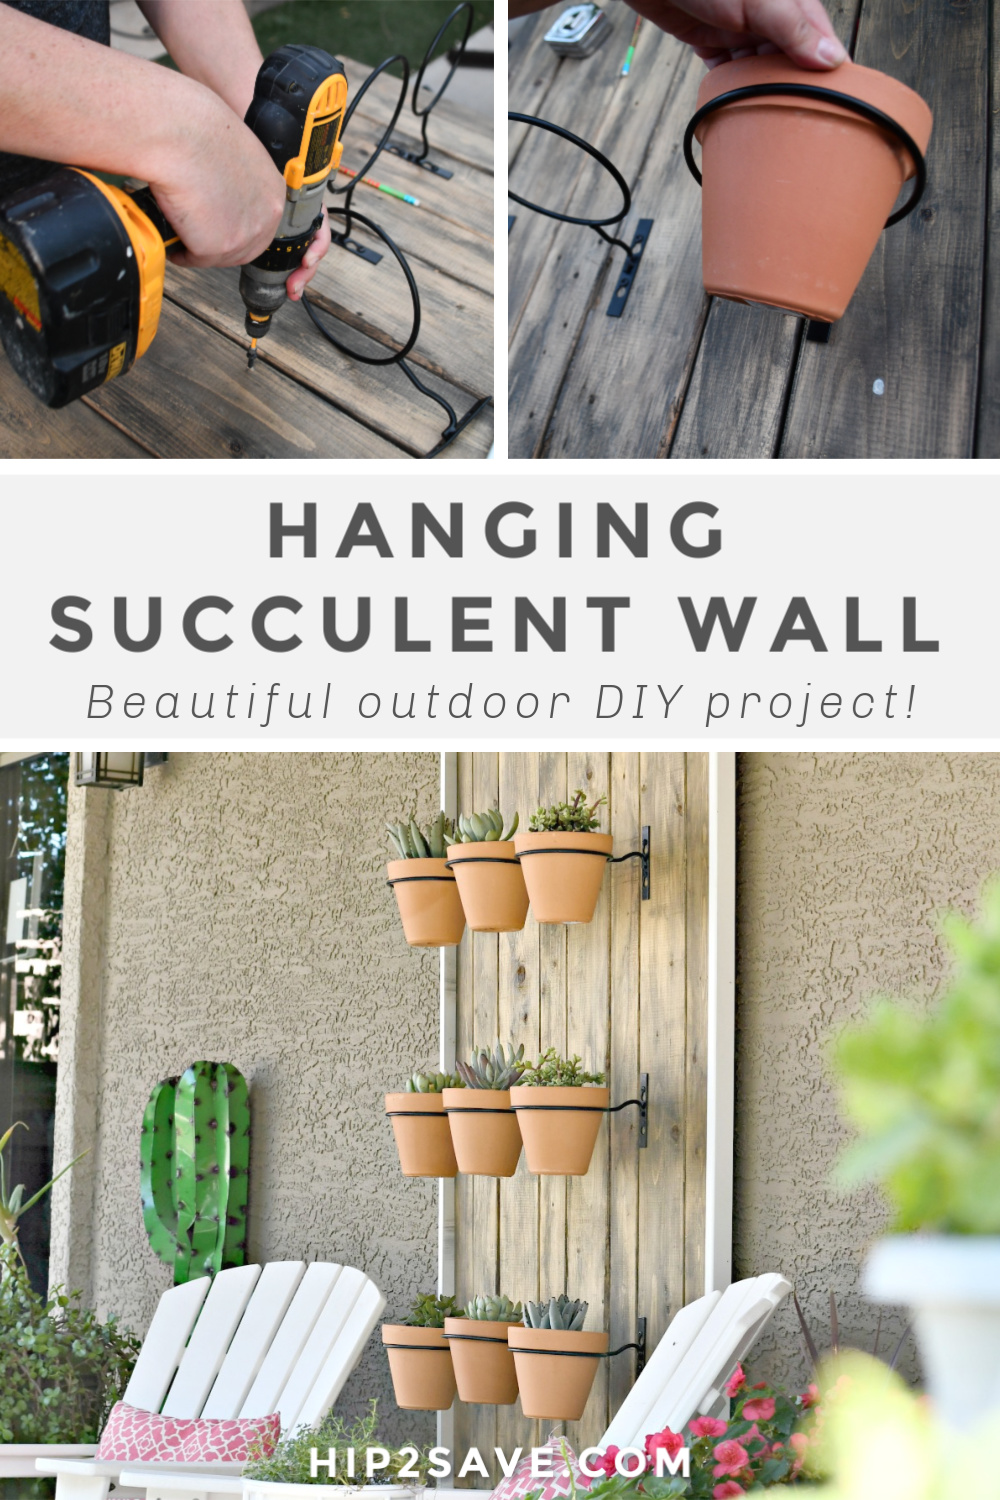 Build This Diy Hanging Succulent Wall For Your Patio Hip2save